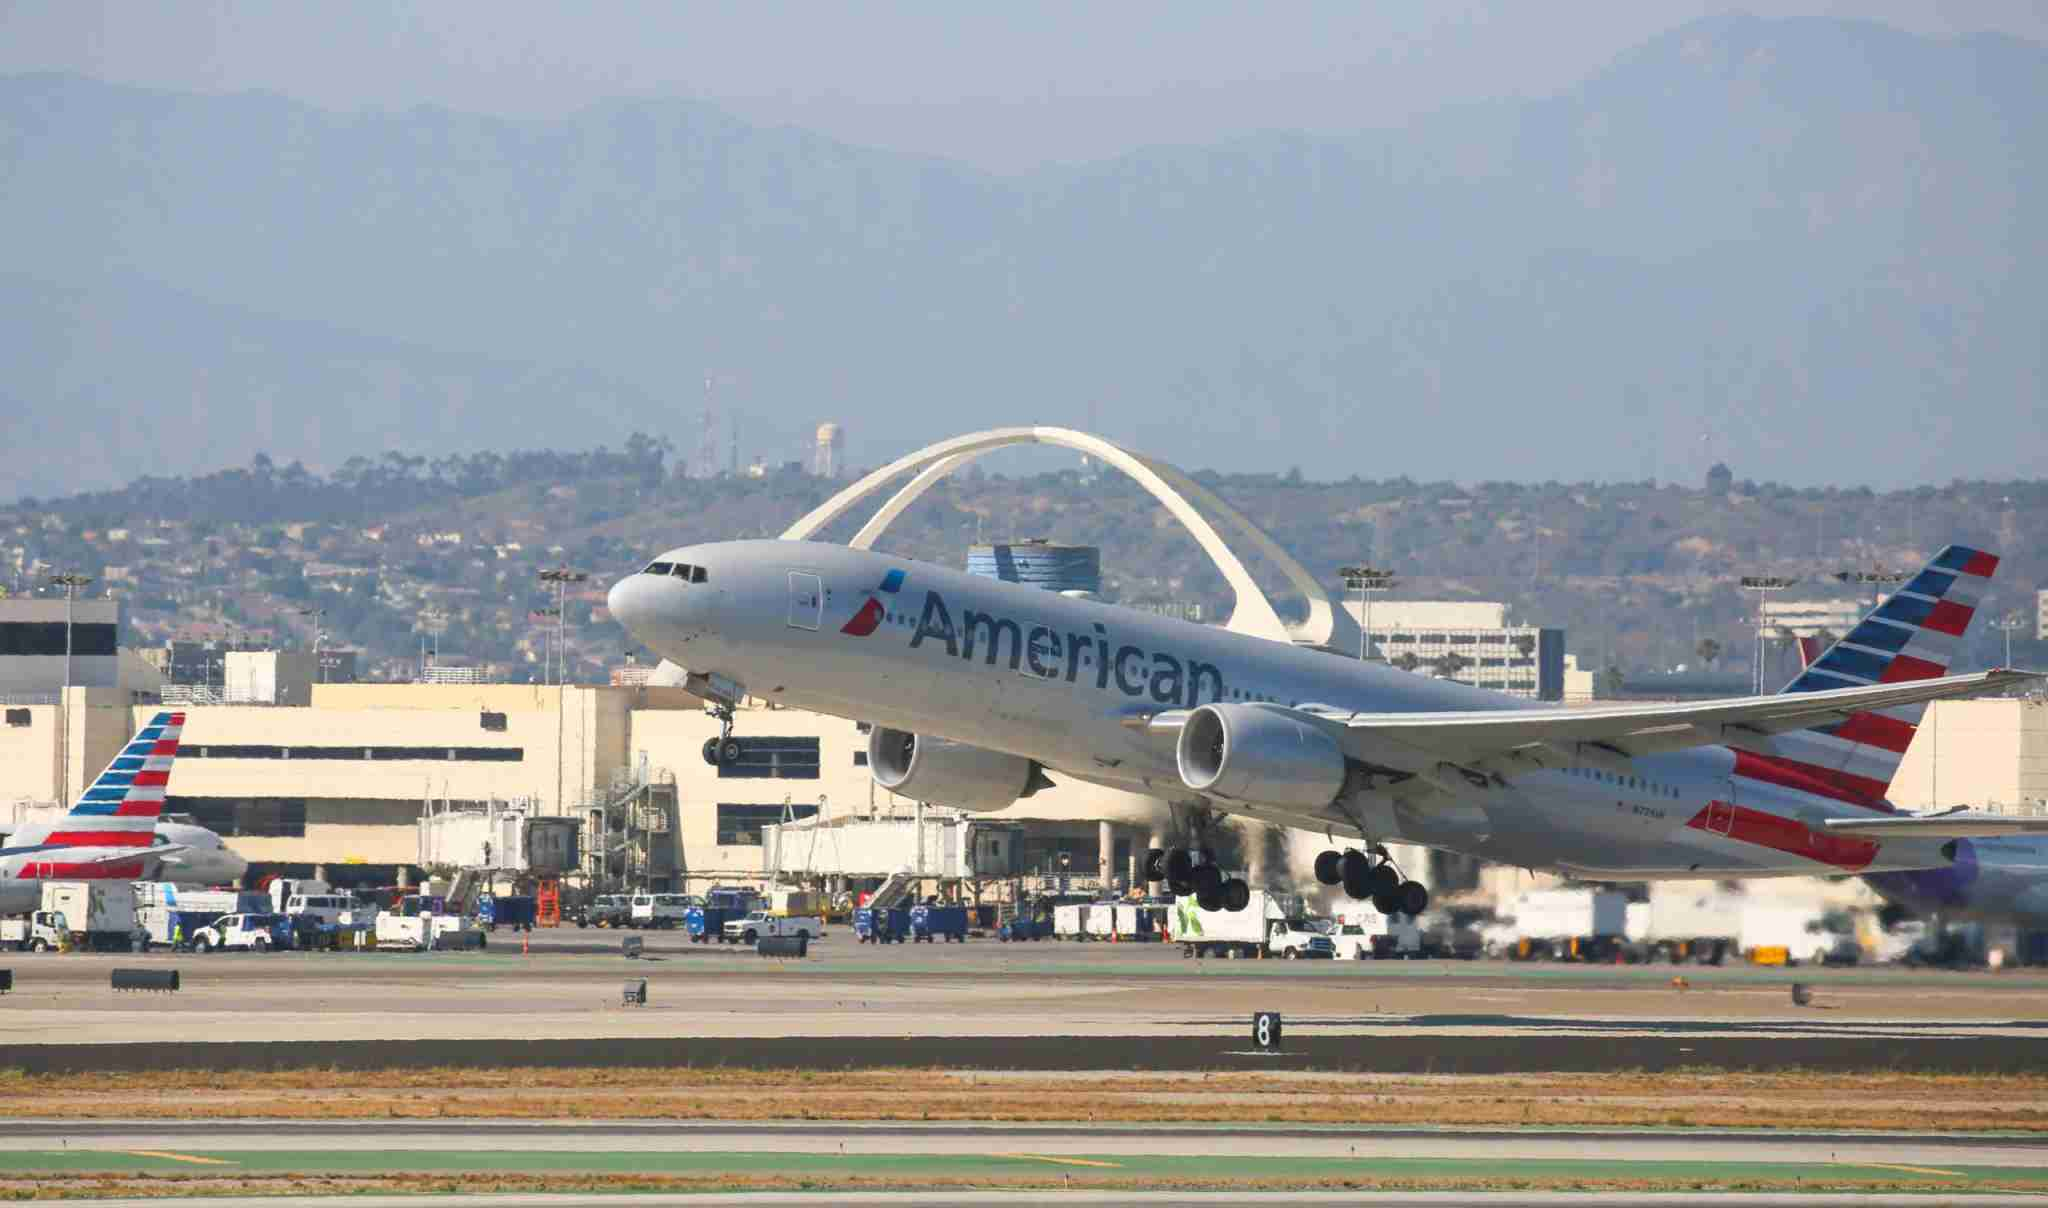 LOS ANGELES, CA - JUNE 18: American Airlines Boeing 777, departs Los Angeles International Airport on June 18, 2017 in Los Angeles, California. (Photo by FG/Bauer-Griffin/GC Images)